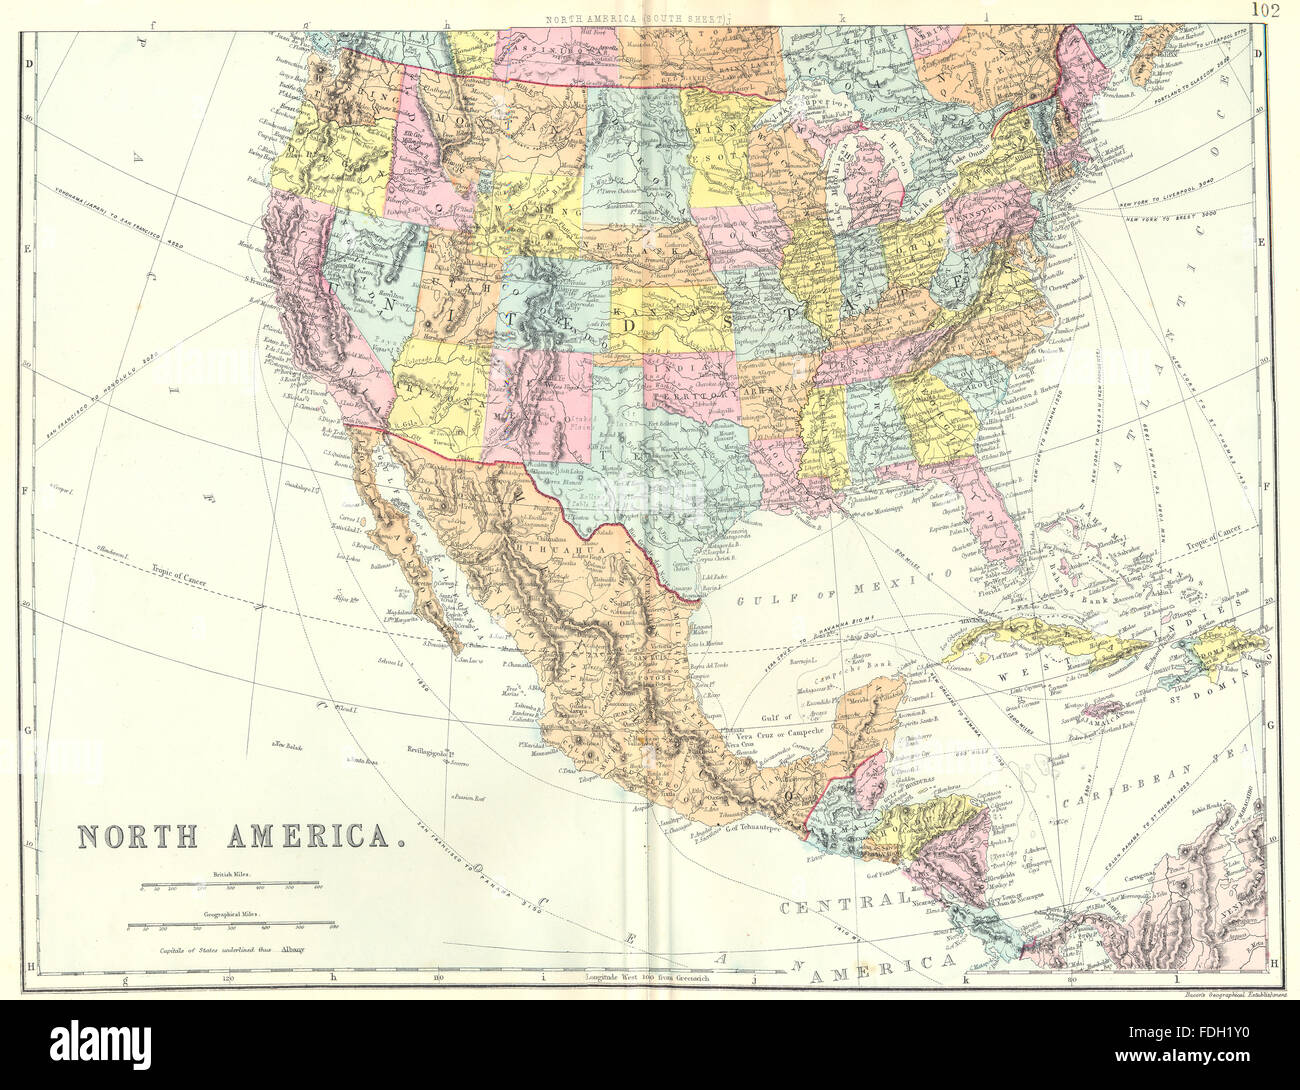 North South America Map Mexico Stock Photos North South America